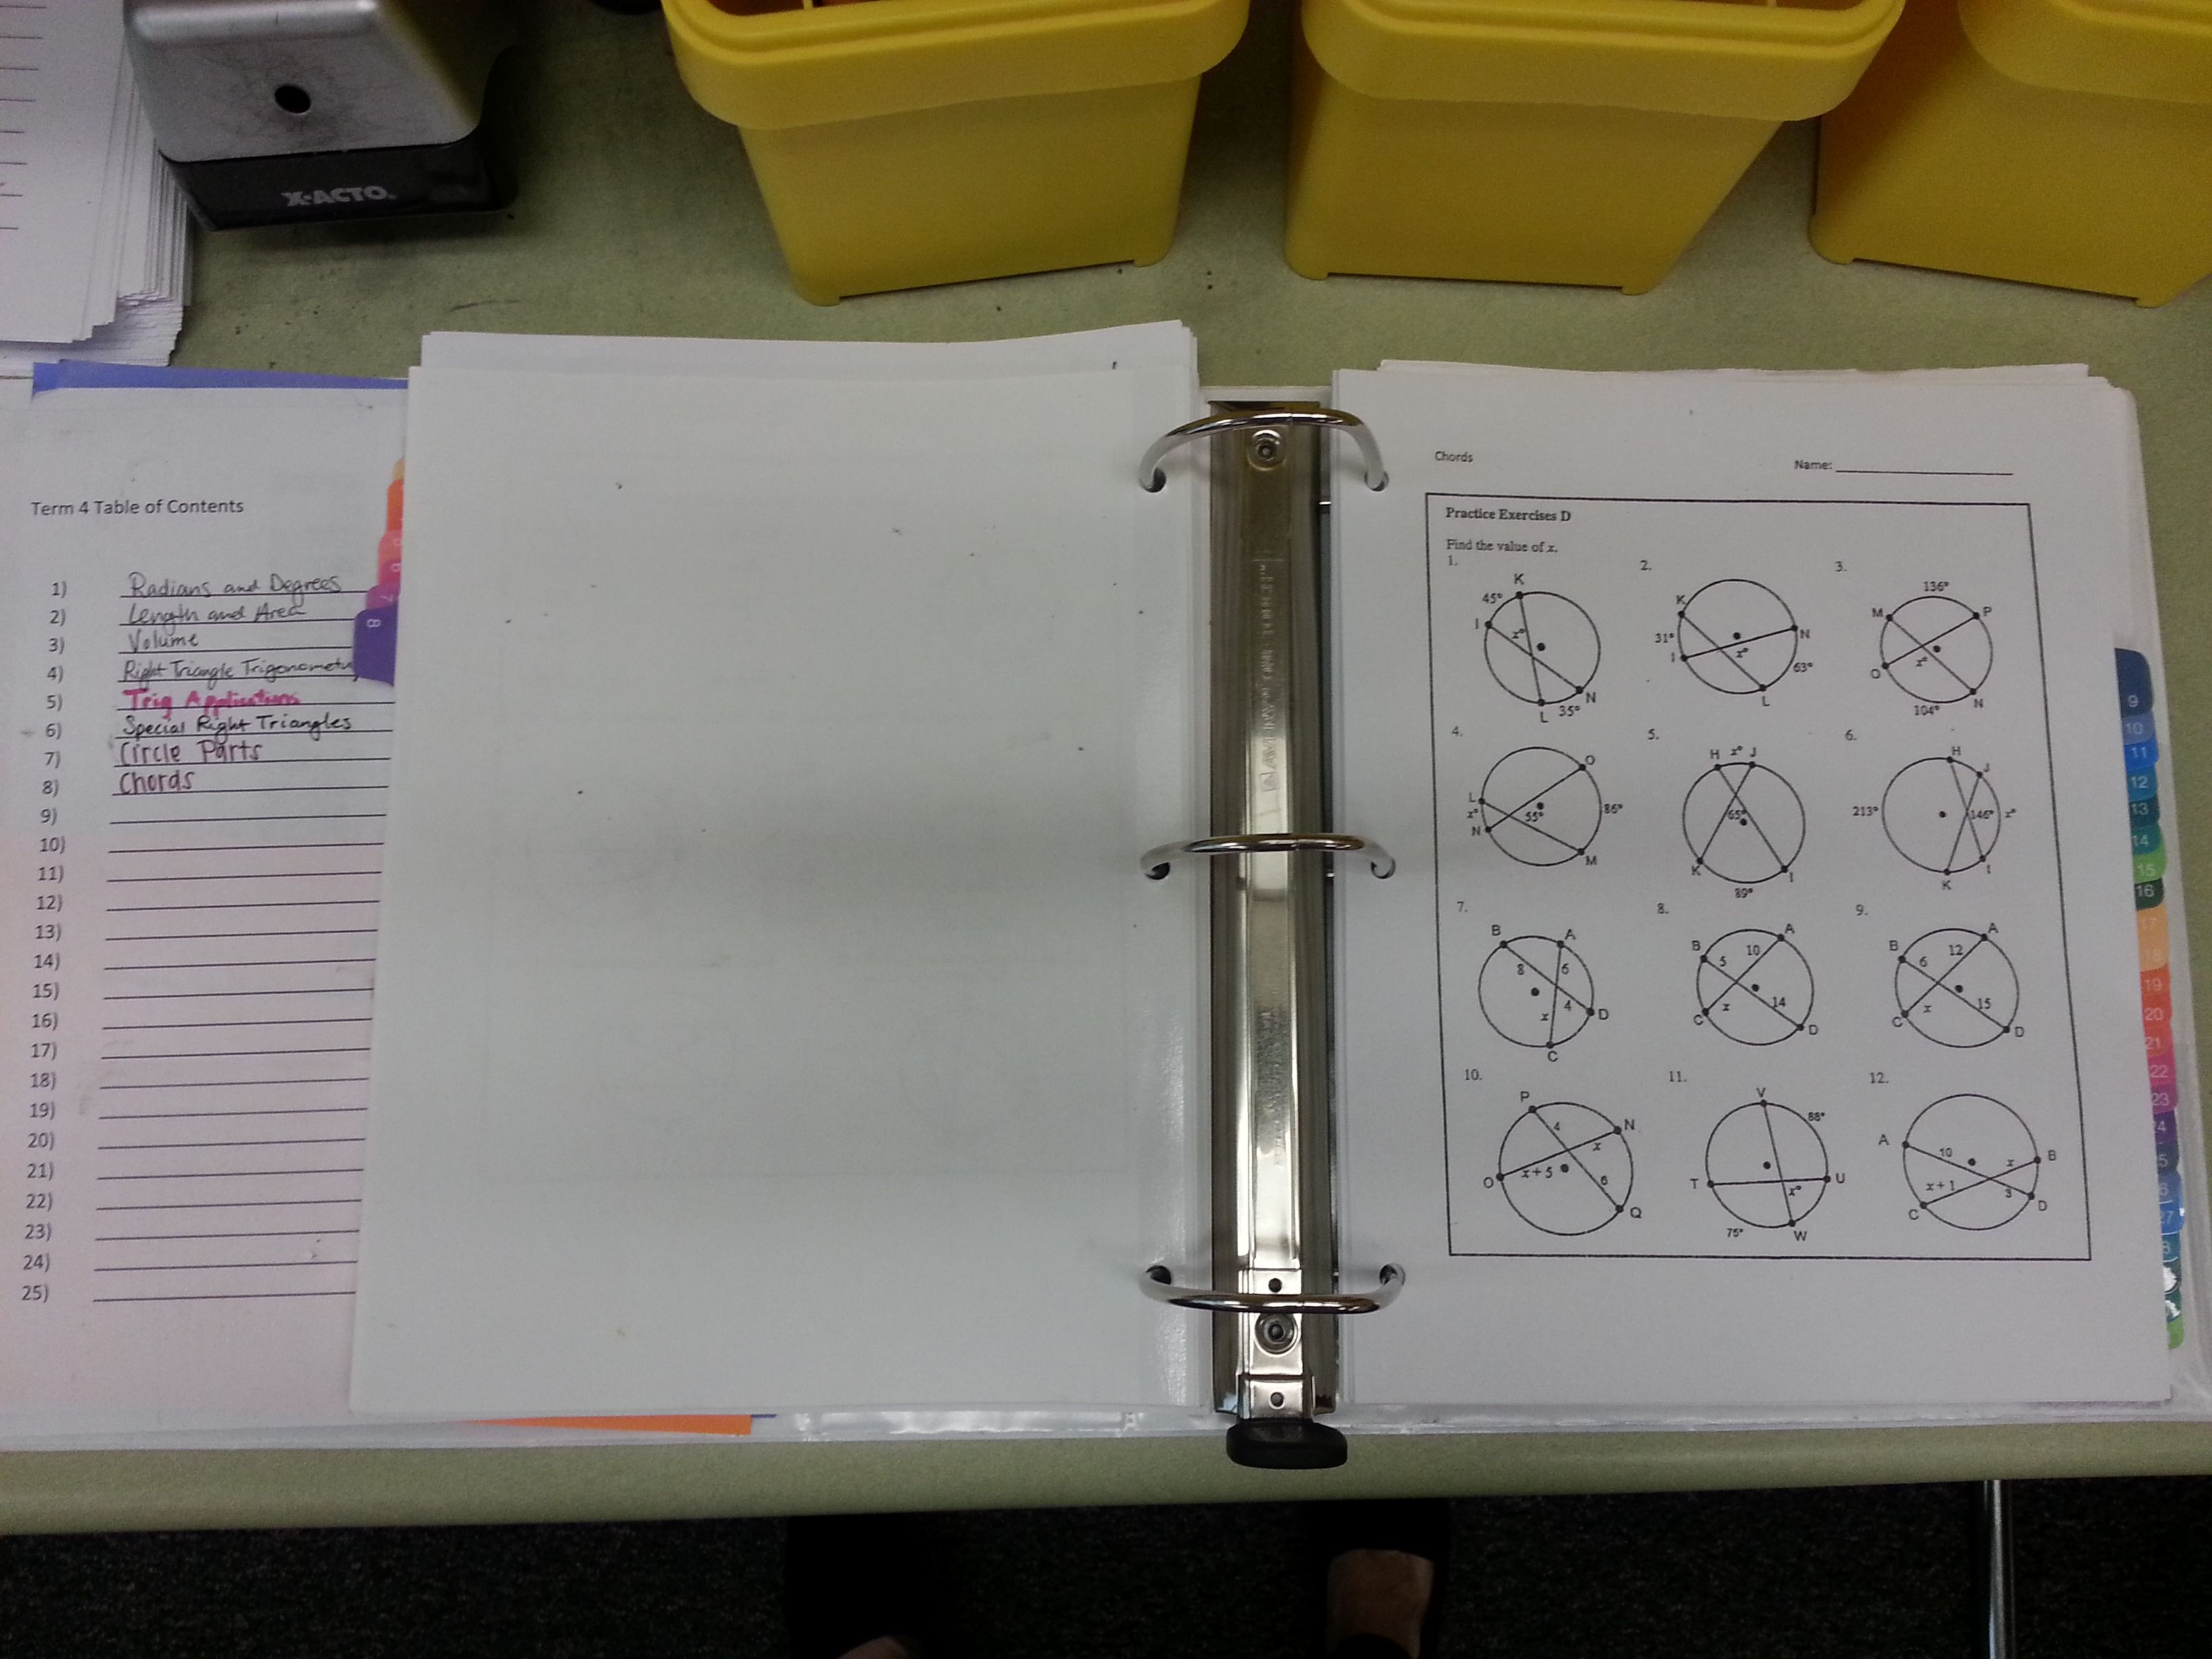 This Teacher Uses A Binder To Store Older Worksheets